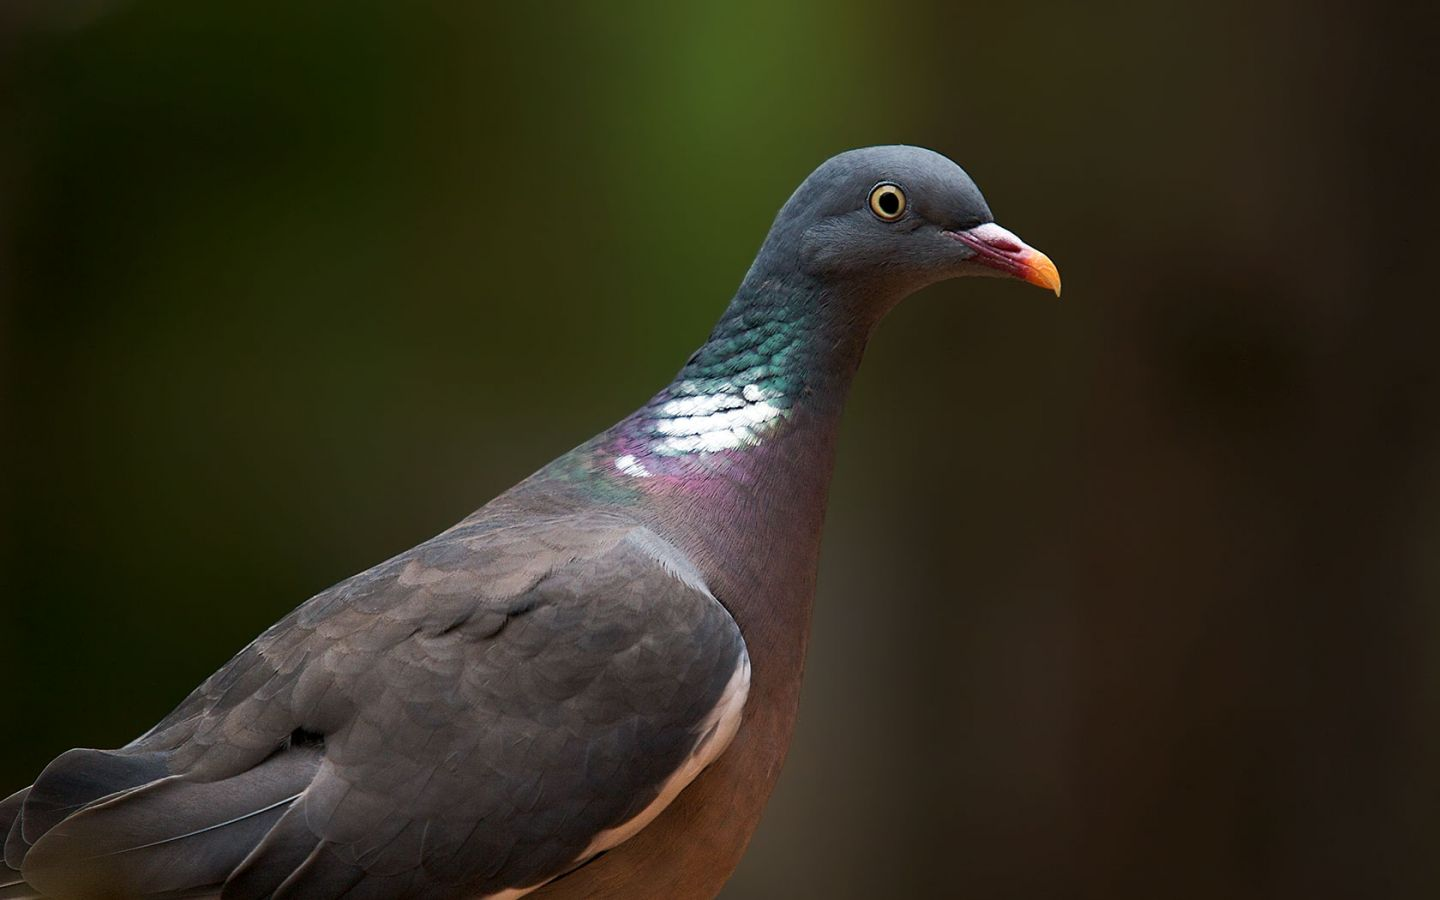 Wood Pigeon Close Up Wallpaper 1440x900